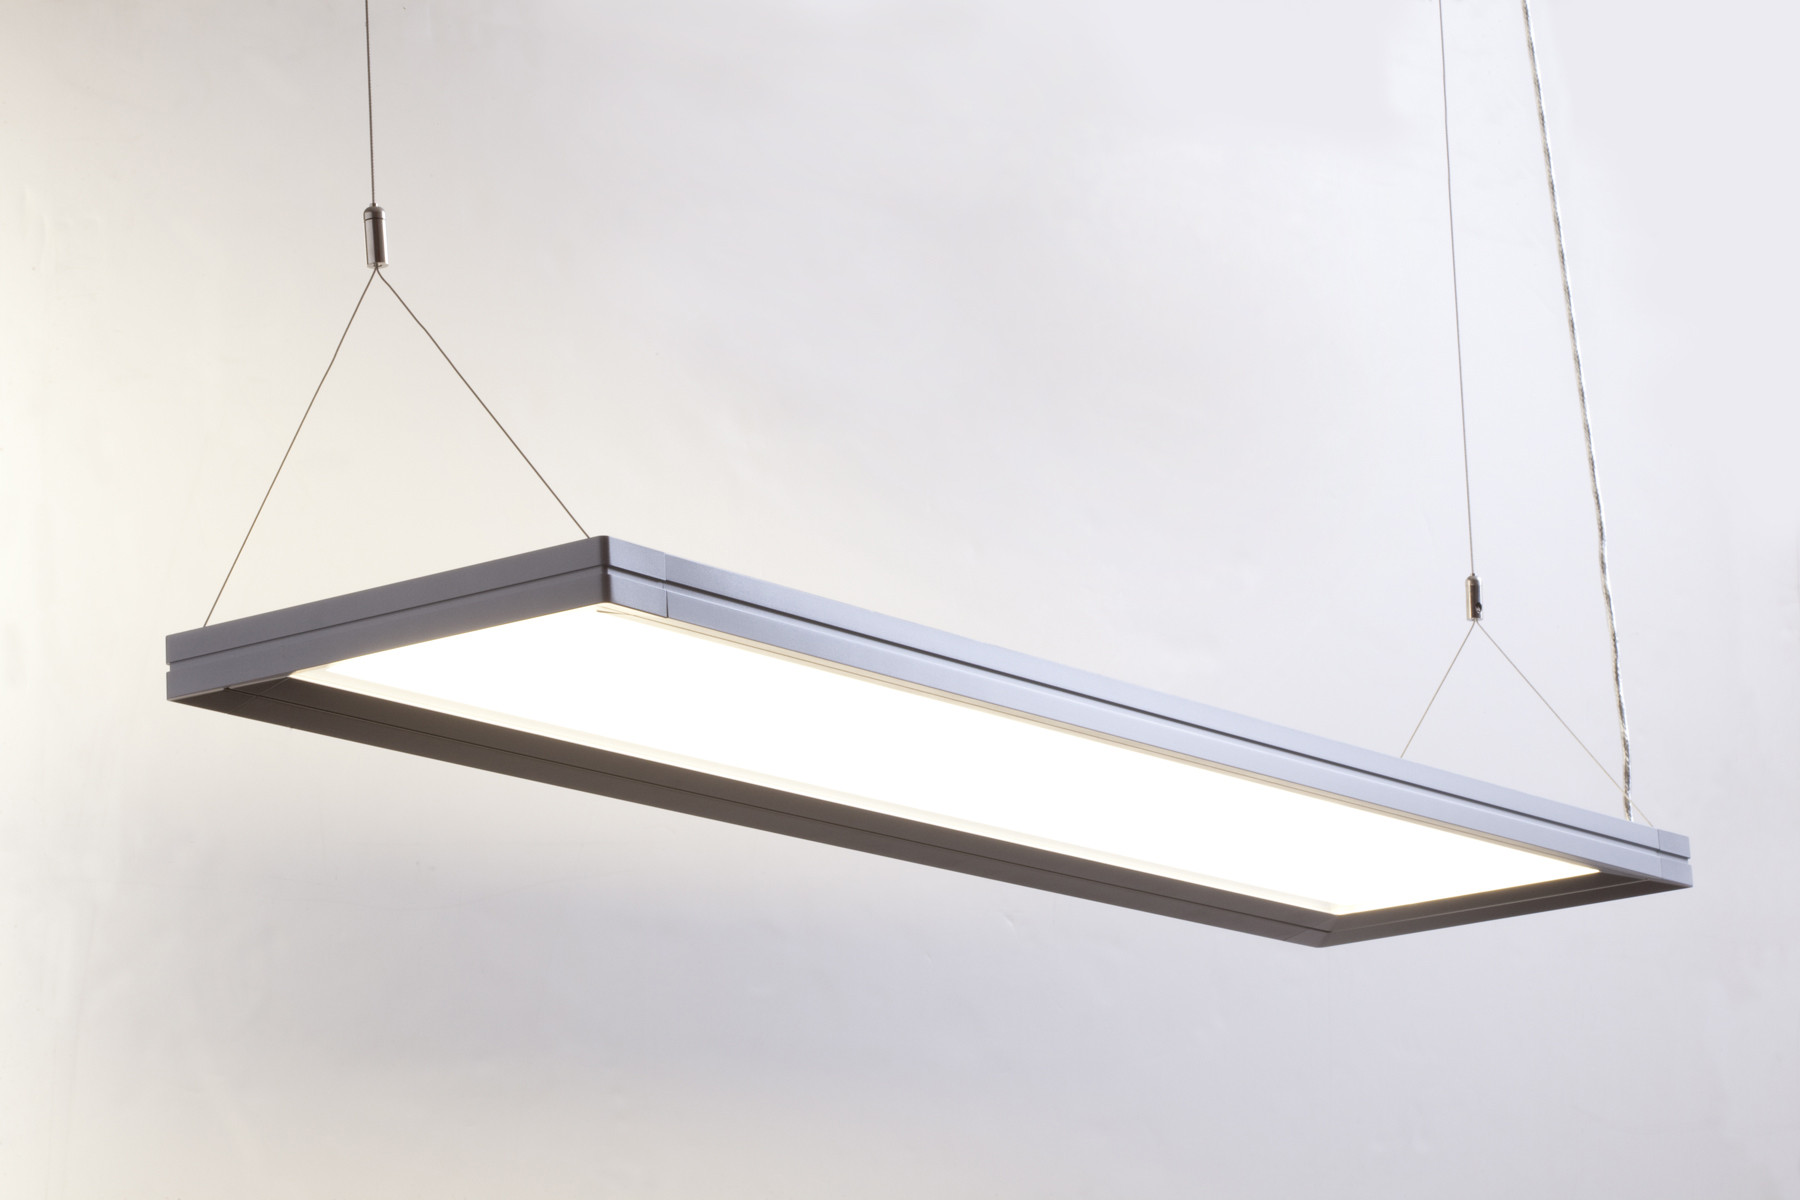 Best ideas about Commercial Led Lighting . Save or Pin Reasons to install mercial LED ceiling lights Now.